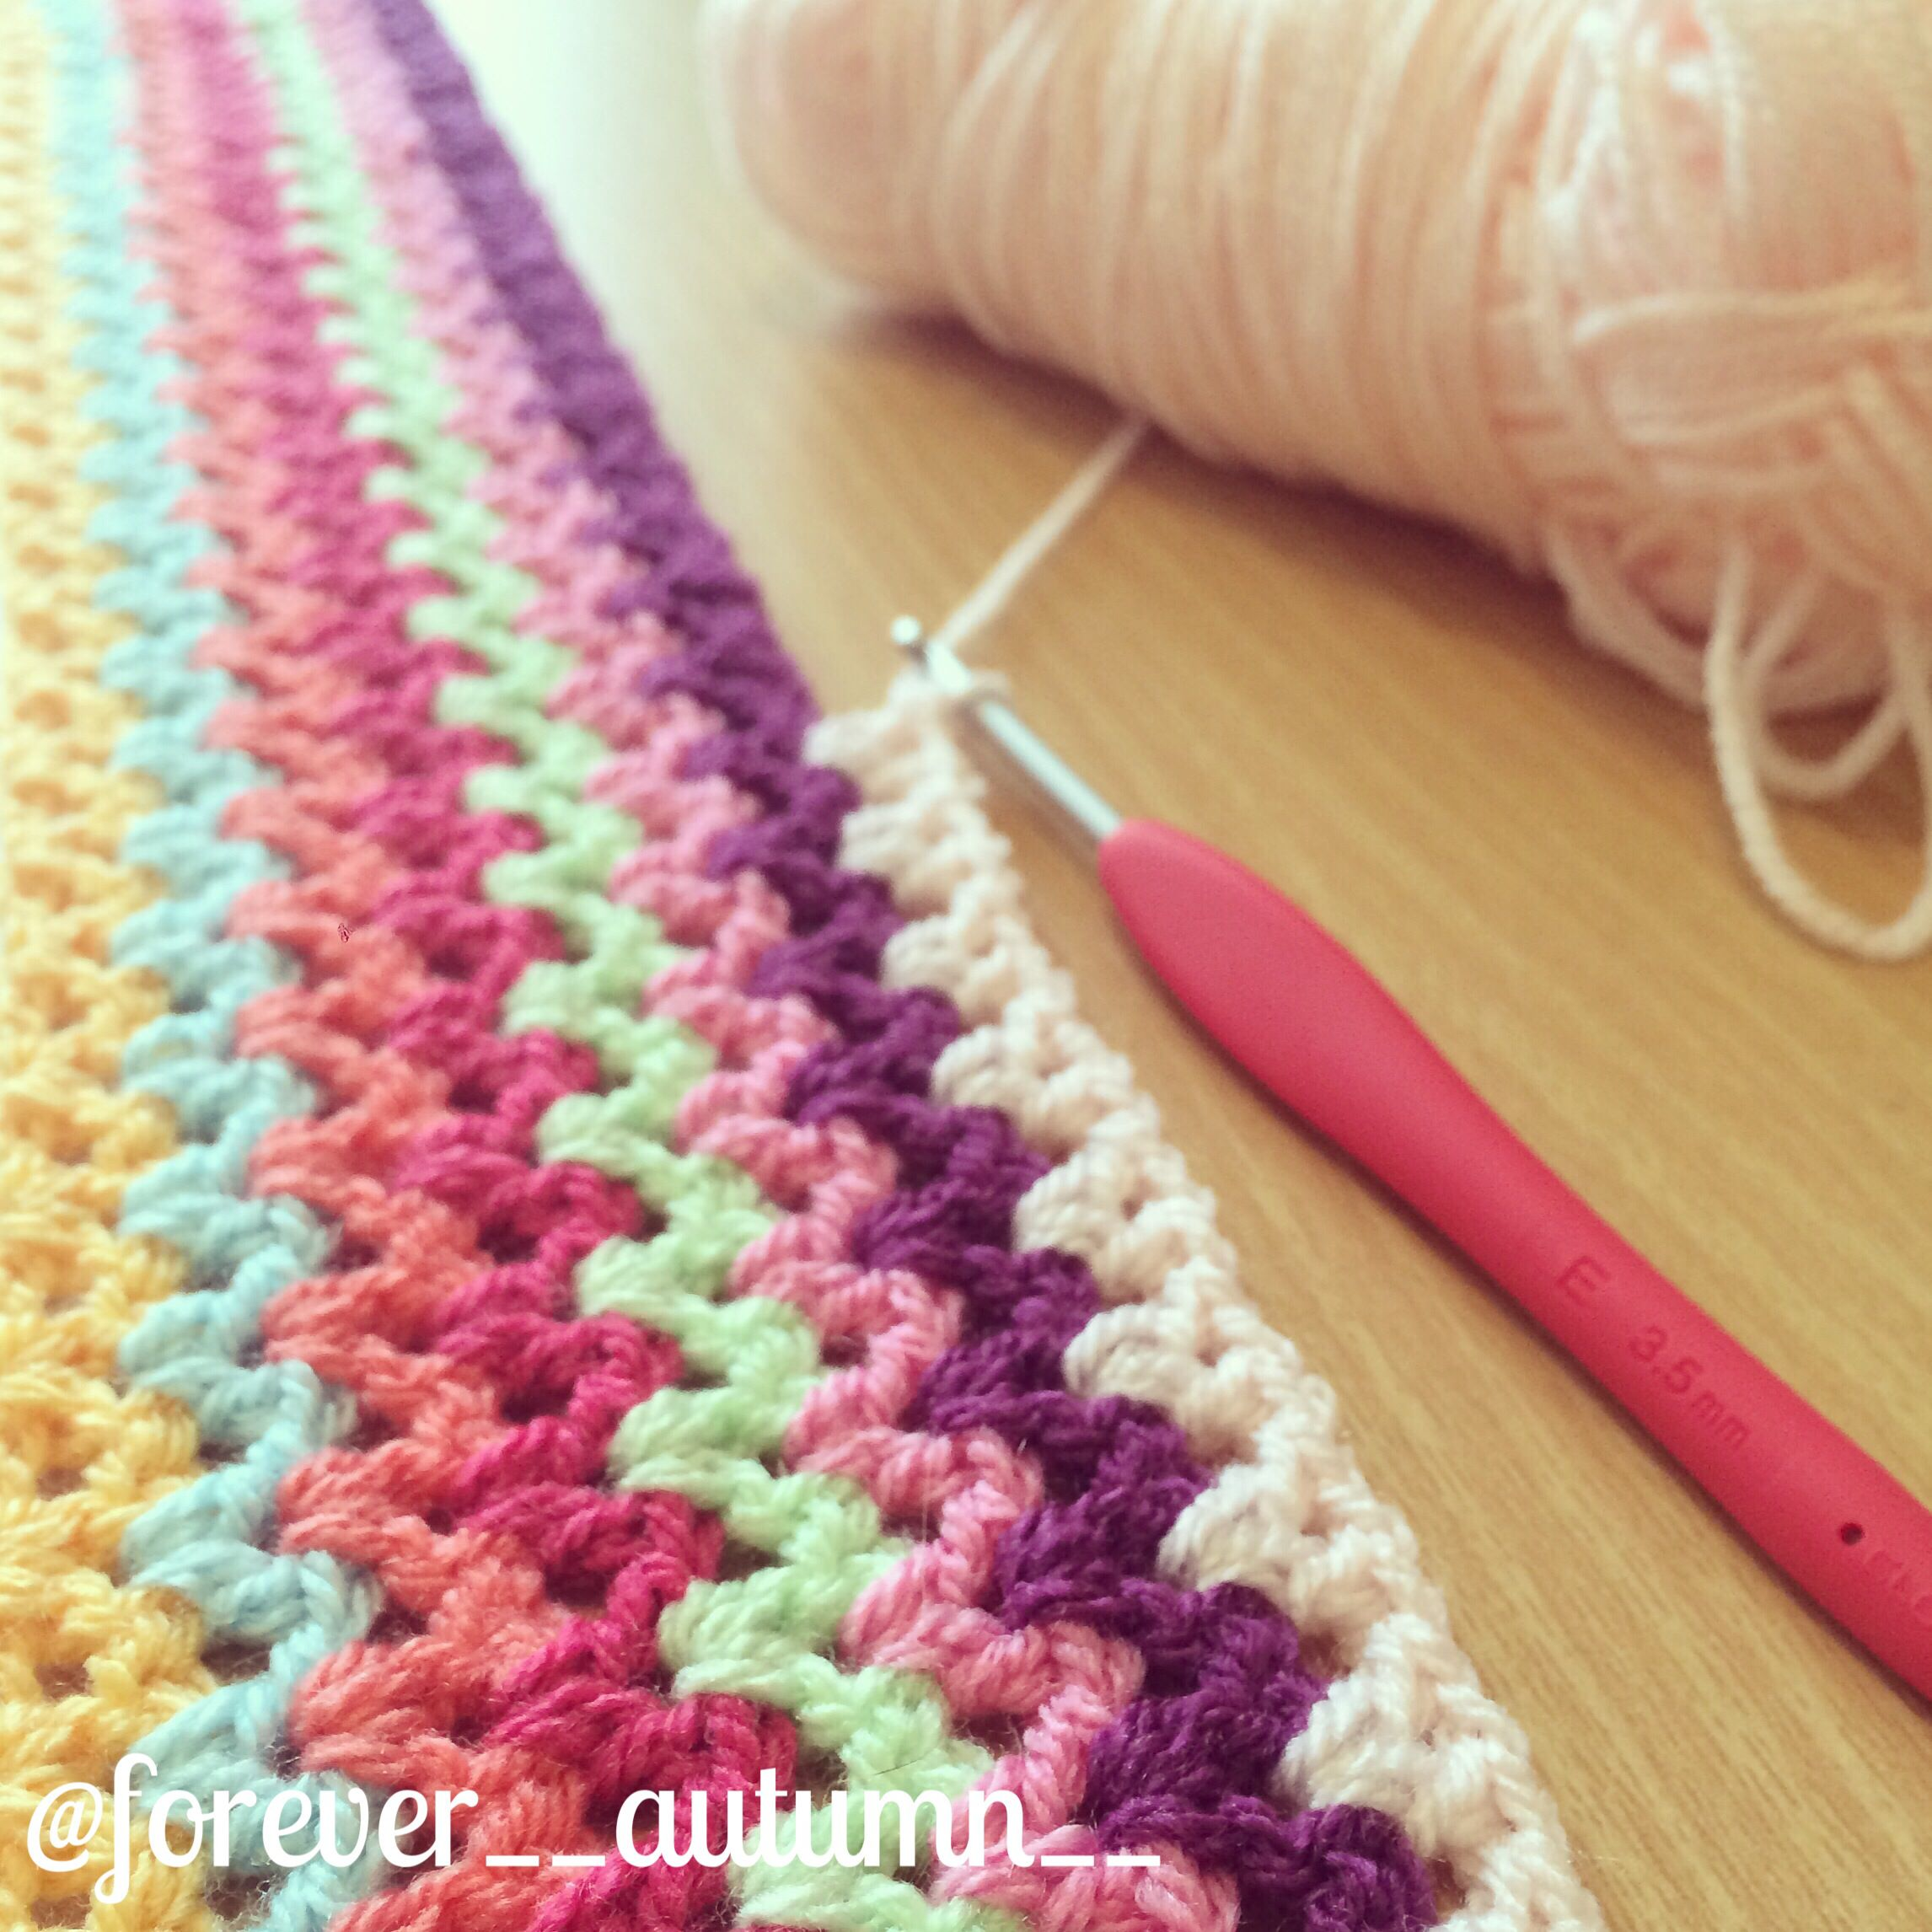 V-stitch blanket in the making @forever__autumn__ | *Wool crafts ...